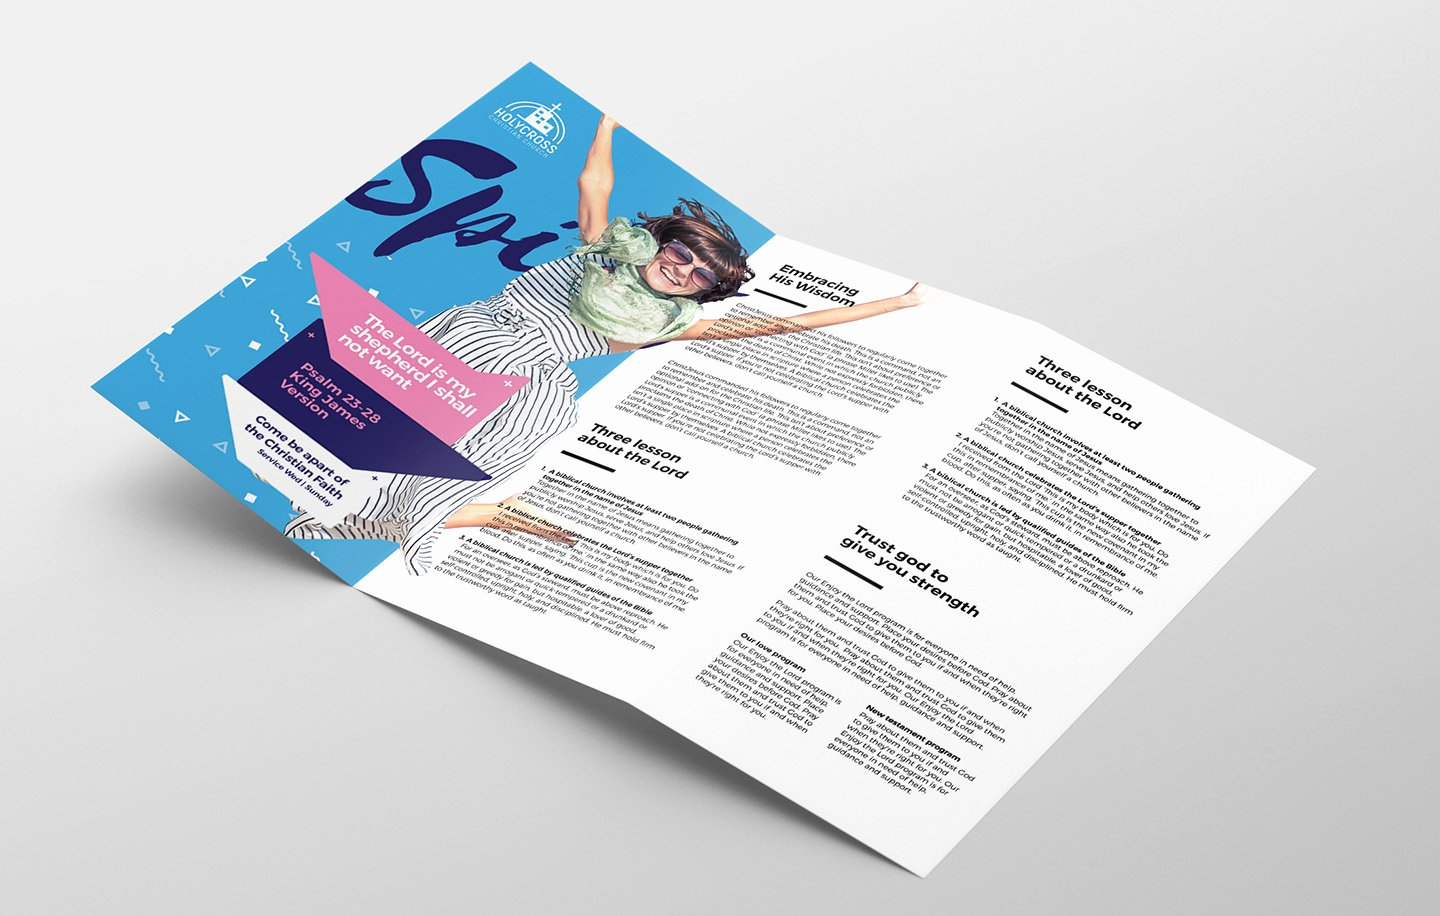 Easter Service Tri Fold Brochure Template In Psd Ai